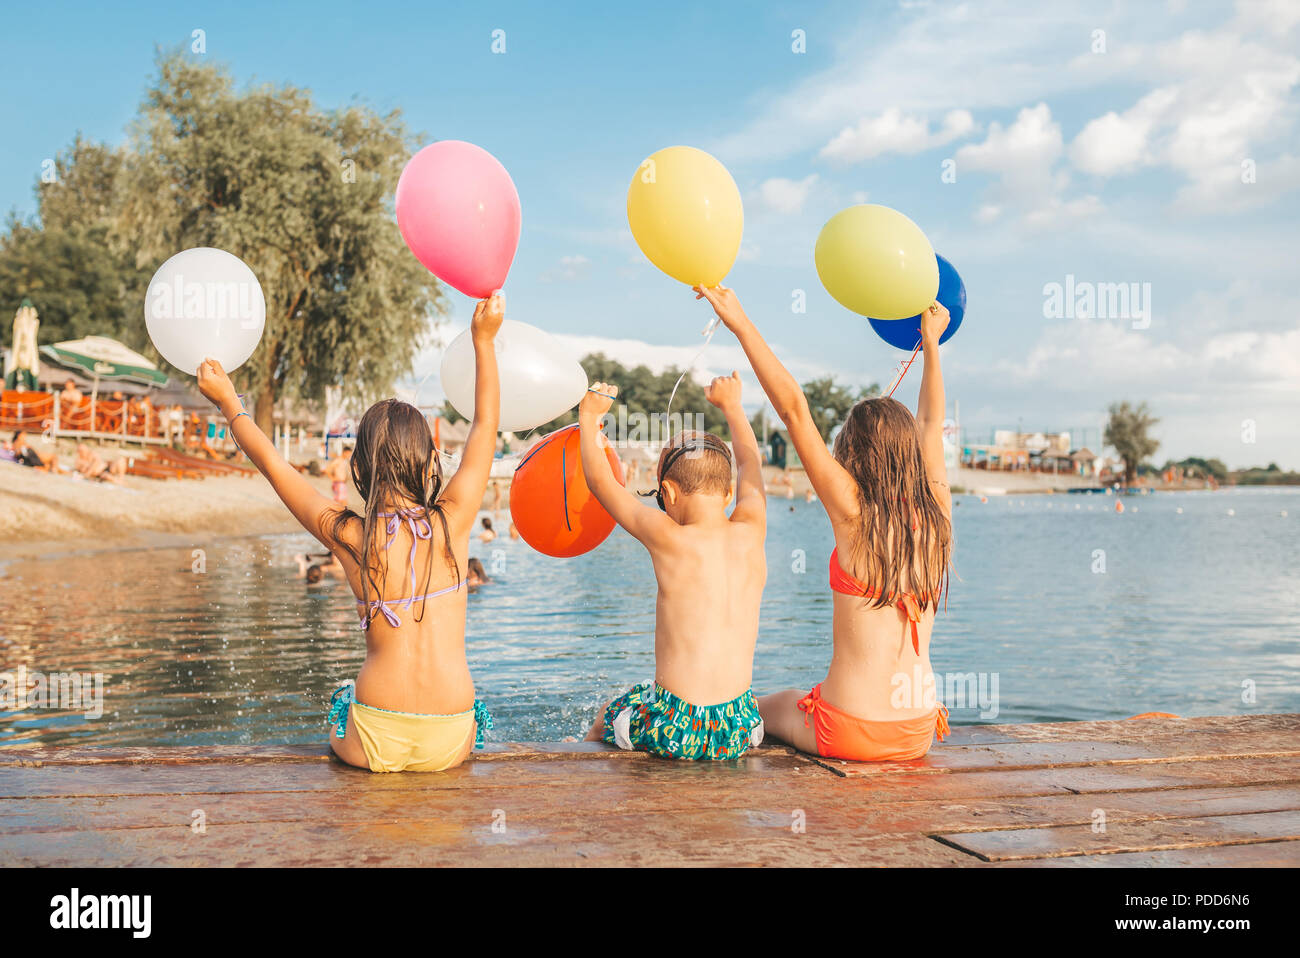 Happy children playing with balloons in the sea. Kids having fun outdoors. Summer vacation and healthy lifestyle concept Stock Photo